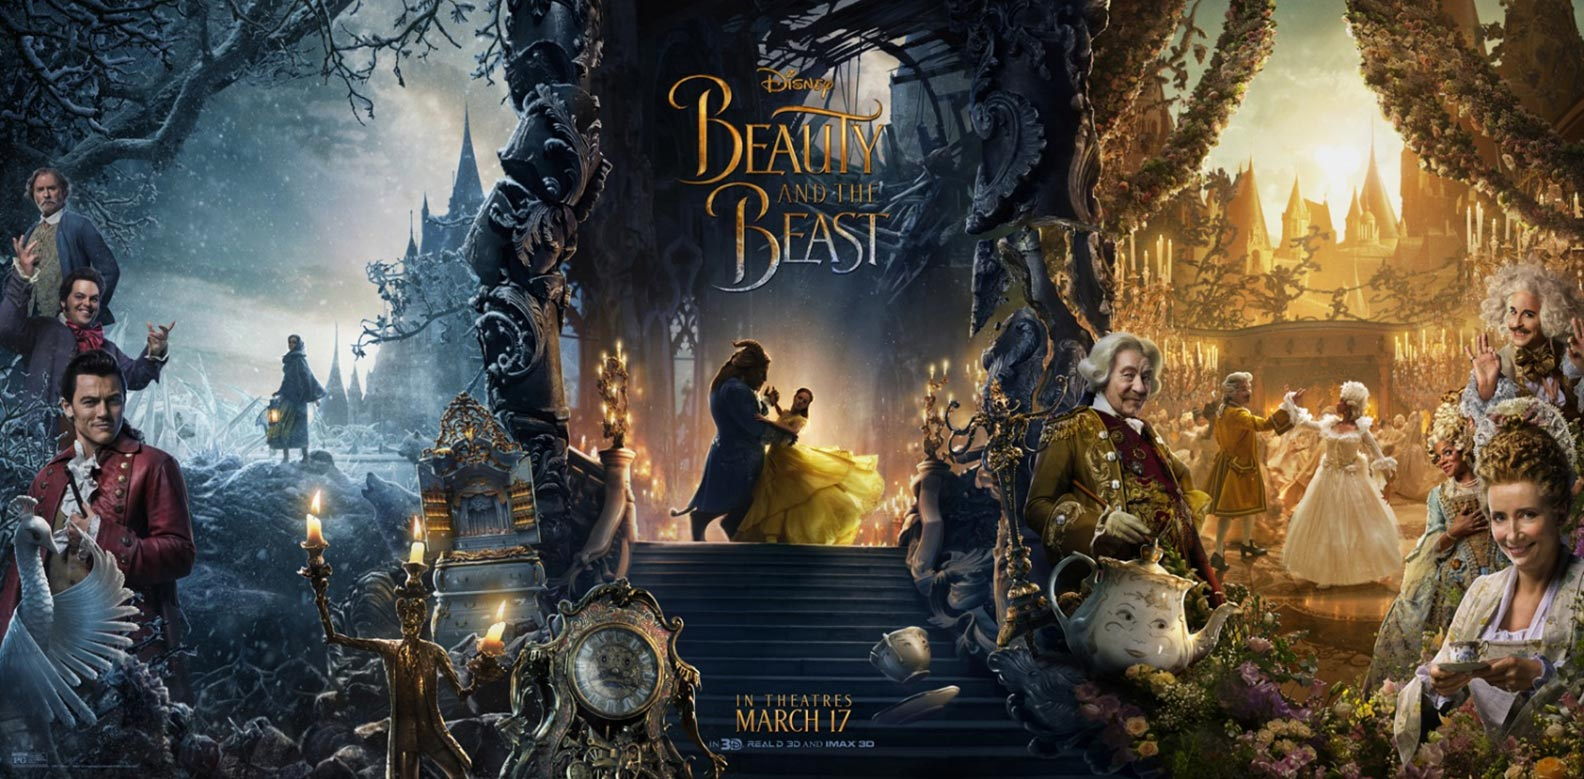 「beauty and the beast 2017 poster」の画像検索結果